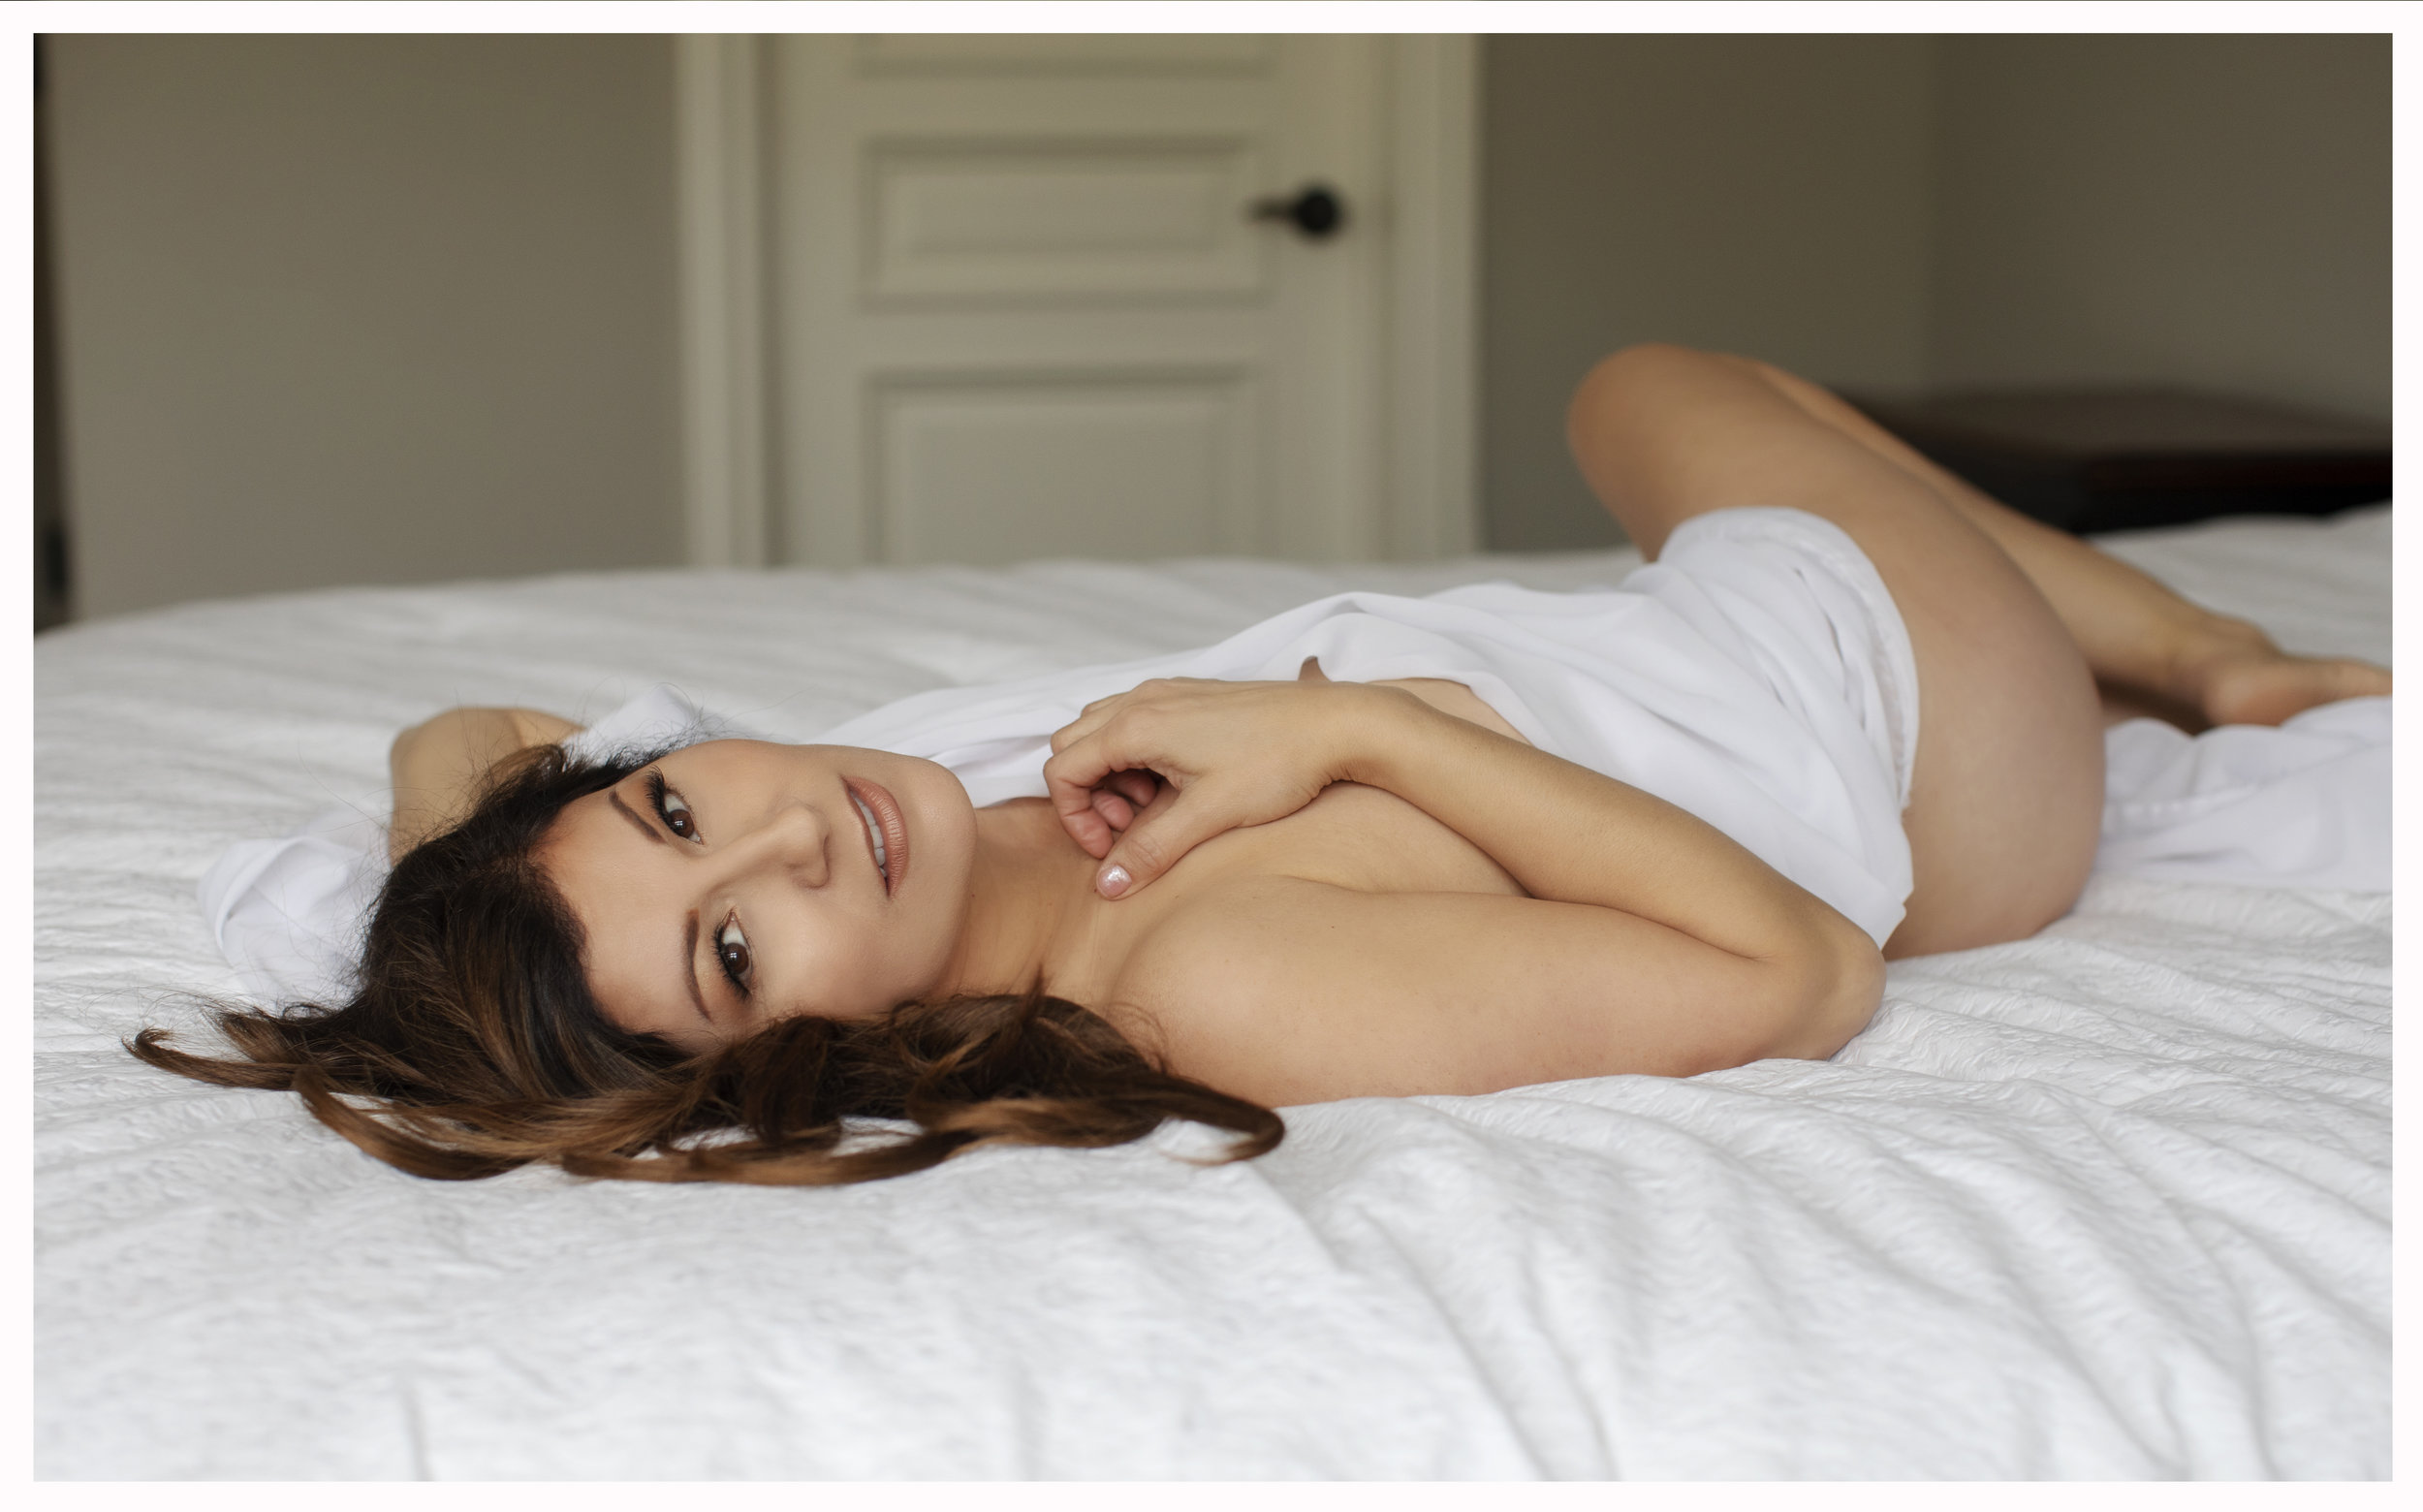 Boudoir photography of a woman on a bed draped in white bed sheets.